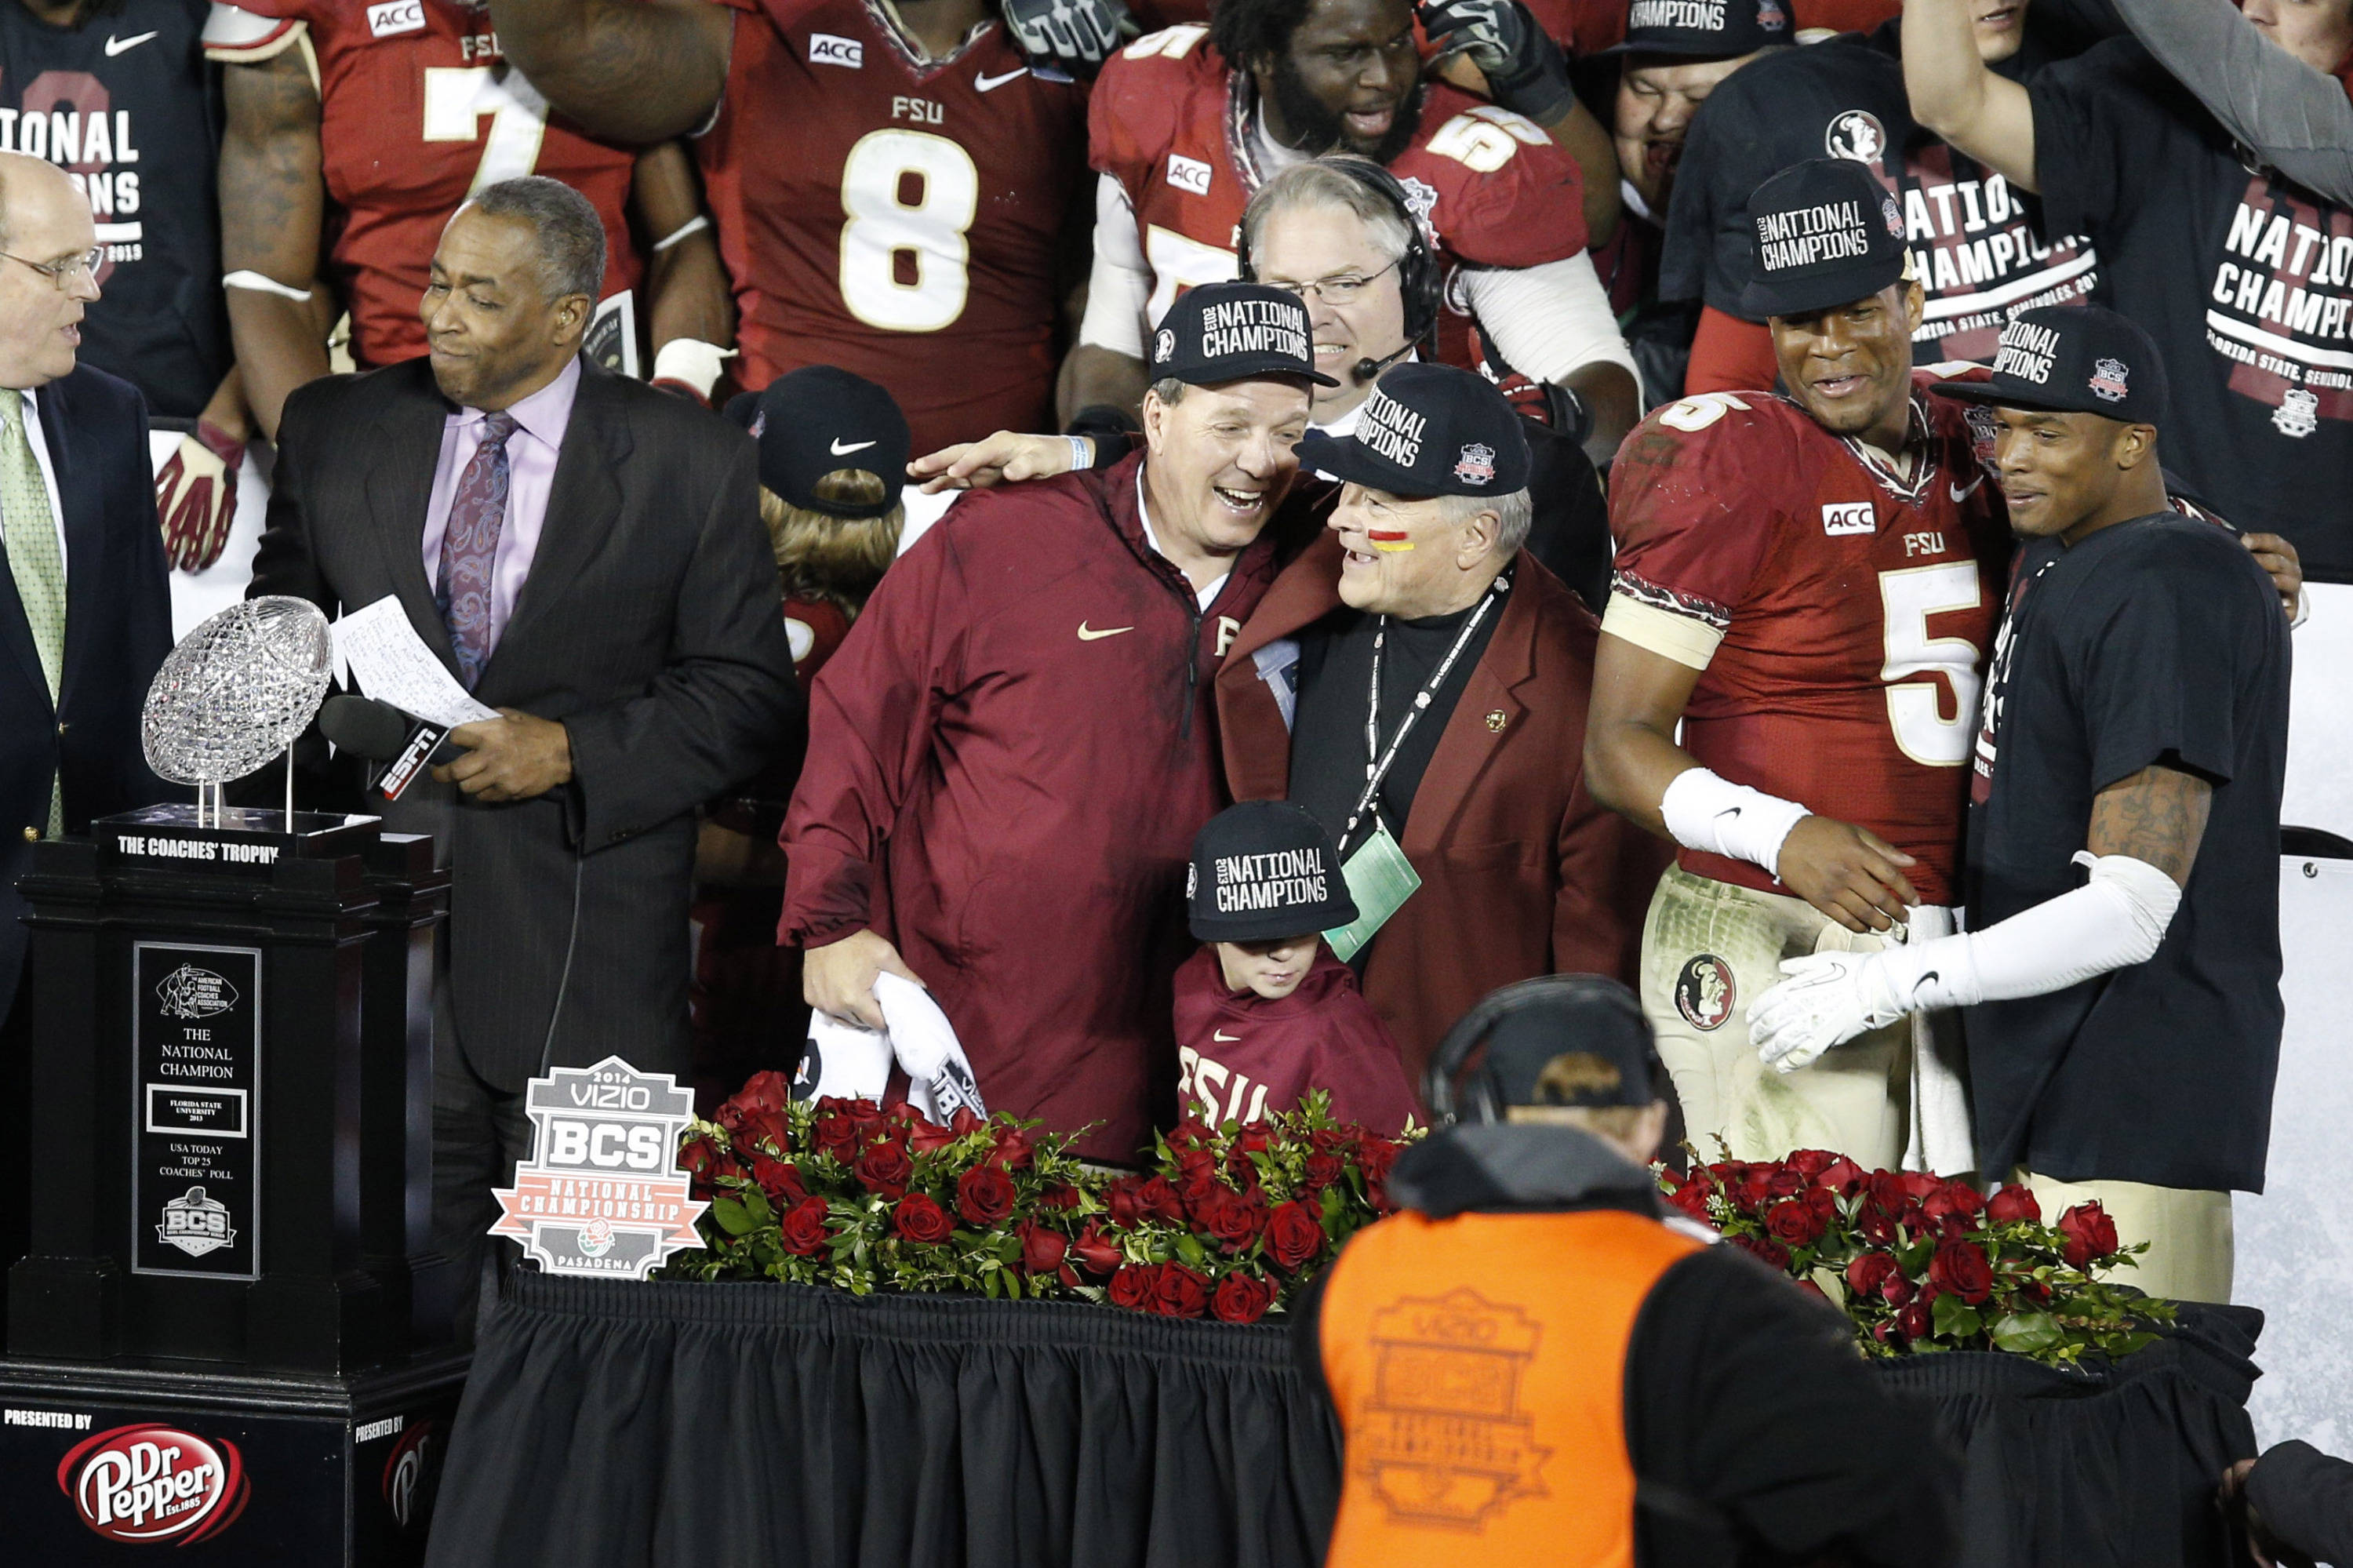 Jan 6, 2014; Pasadena, CA, USA; Florida State Seminoles head coach Jimbo Fisher (left), president Eric J. Barron (second from left), quarterback Jameis Winston (5), and defensive back P.J. Williams (far right) celebrate after defeating the Auburn Tigers 34-31 in the 2014 BCS National Championship game at the Rose Bowl.  Mandatory Credit: Kelvin Kuo-USA TODAY Sports